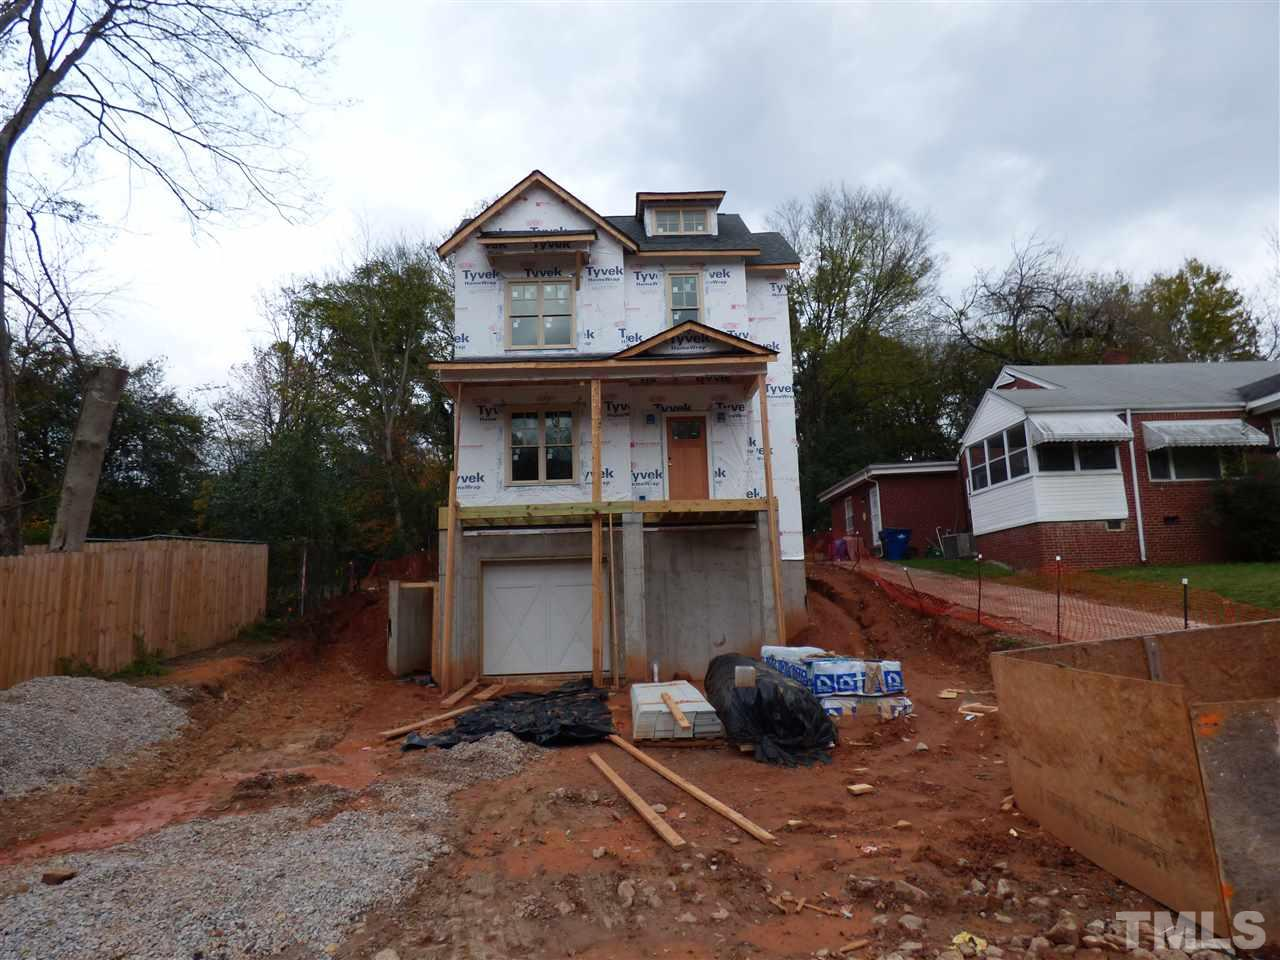 707 S STATE STREET, RALEIGH, NC 27601